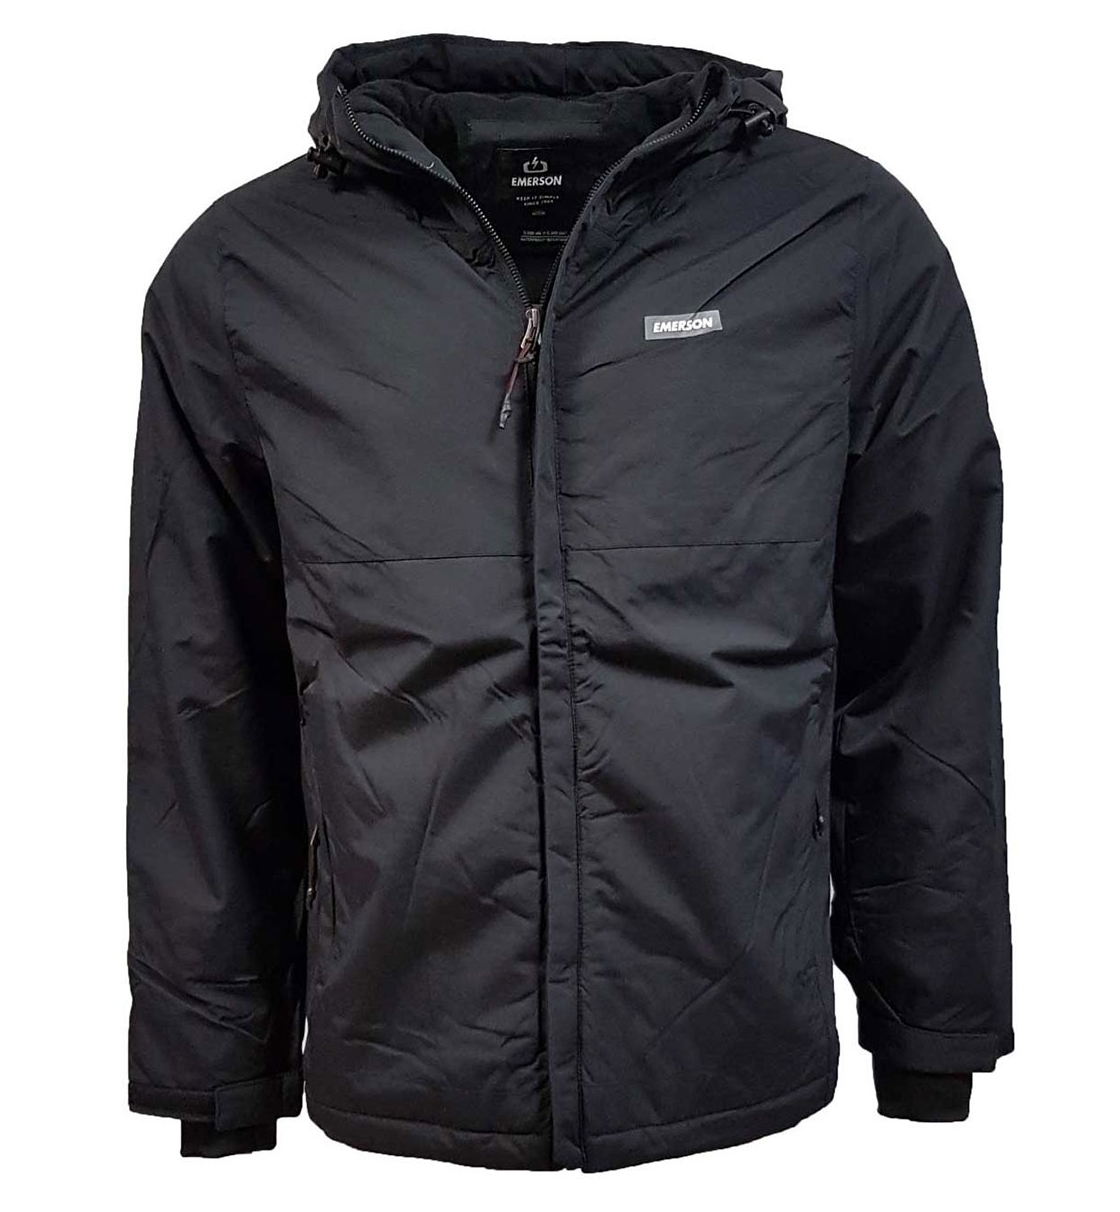 Emerson Ss19 Men'S Jacket With Hood